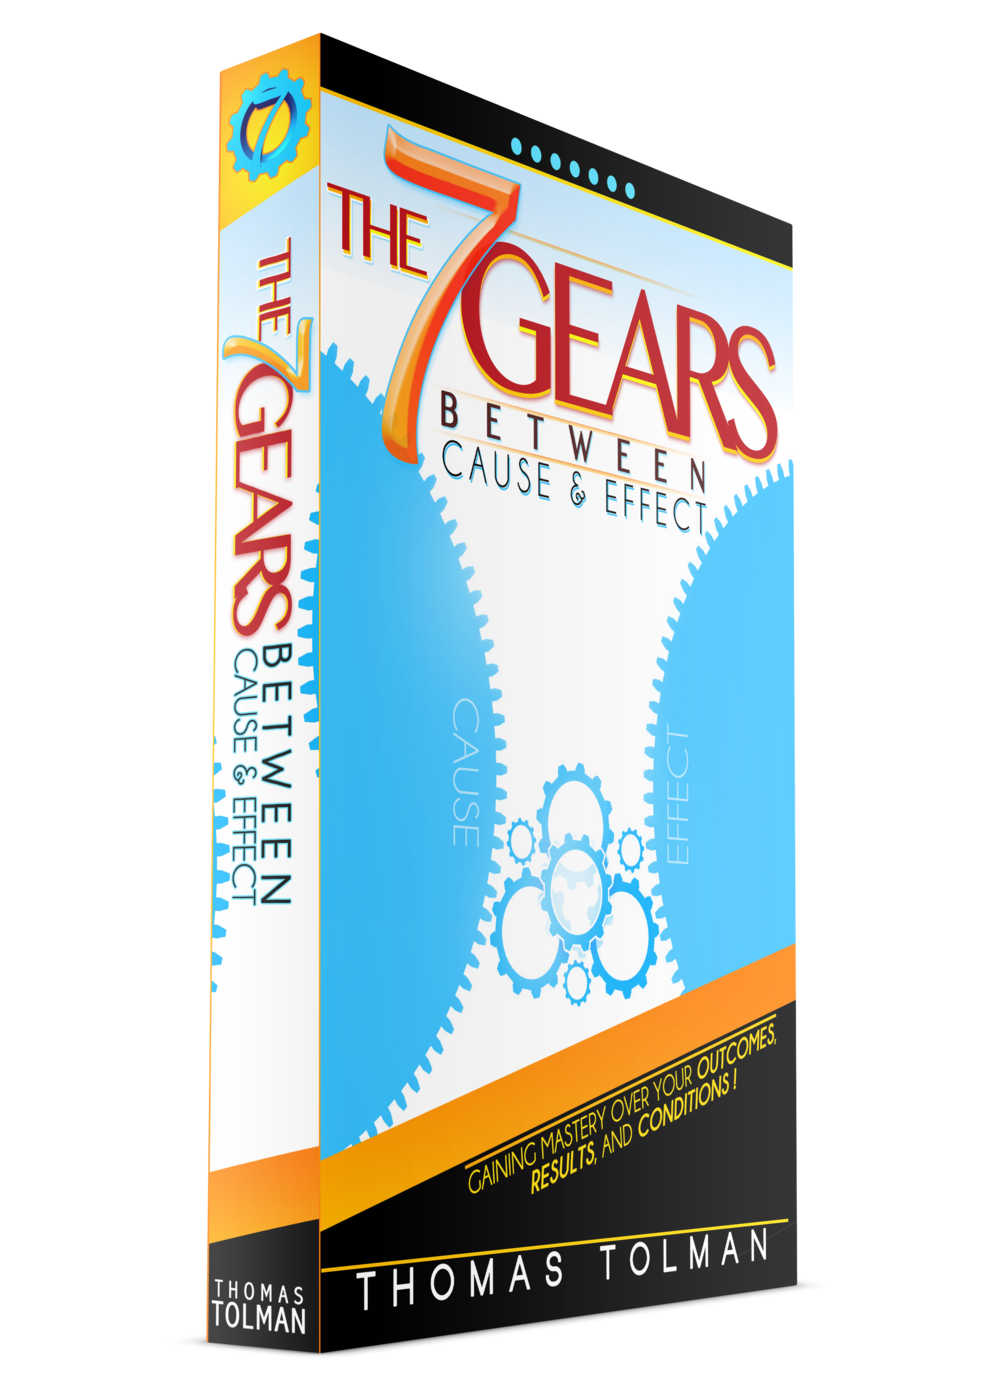 the 7 gears between cause and effect book cover